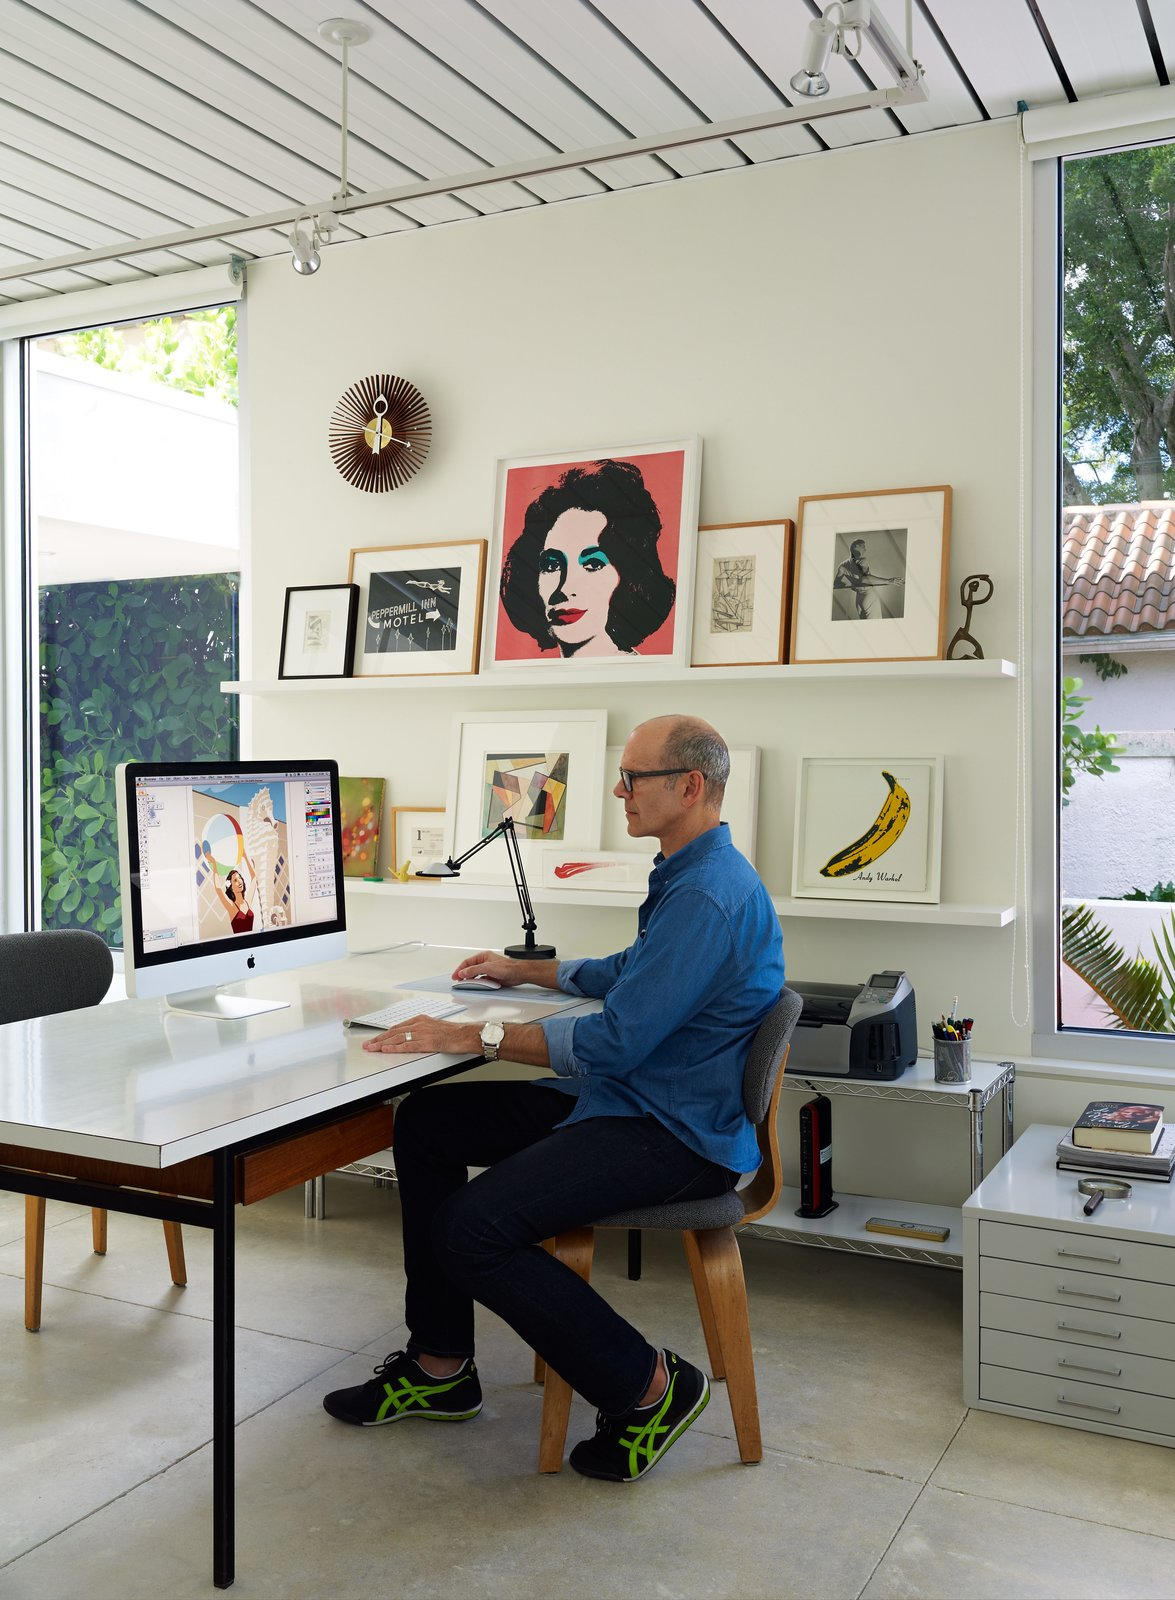 Office, Study Room Type, Chair, Lamps, Concrete Floor, Shelves, and Desk Pirman, an illustrator, works on a vintage Florence Knoll table in his studio at the front of the house.  Photos from This Sparkling New Home Is a Perfect Remake of Classic Sarasota School Modernism